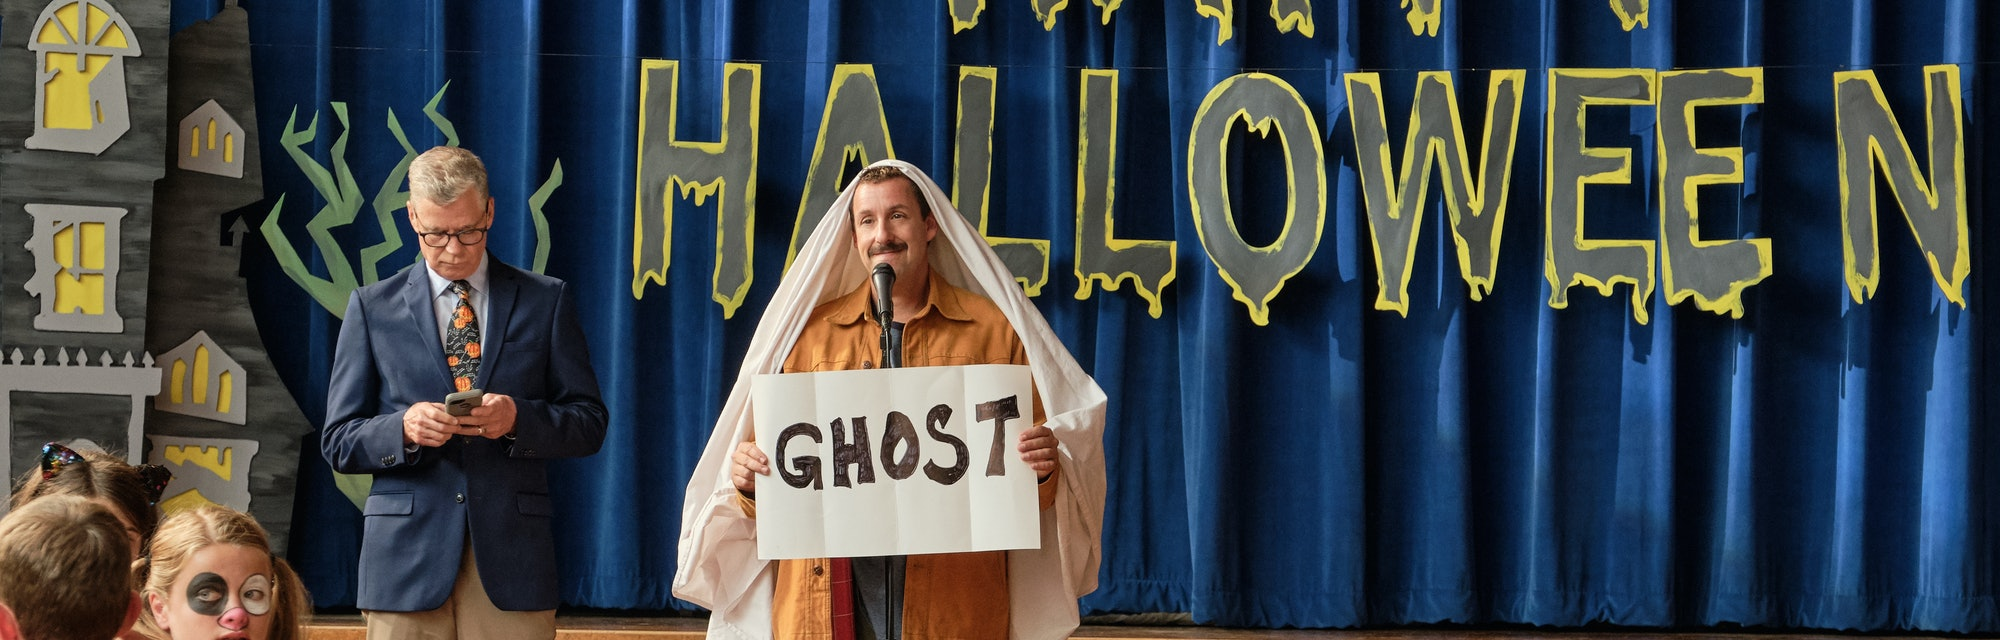 Hubie Halloween Netflix Trailer Adam Sandler Gets Revenge For Oscar Snub